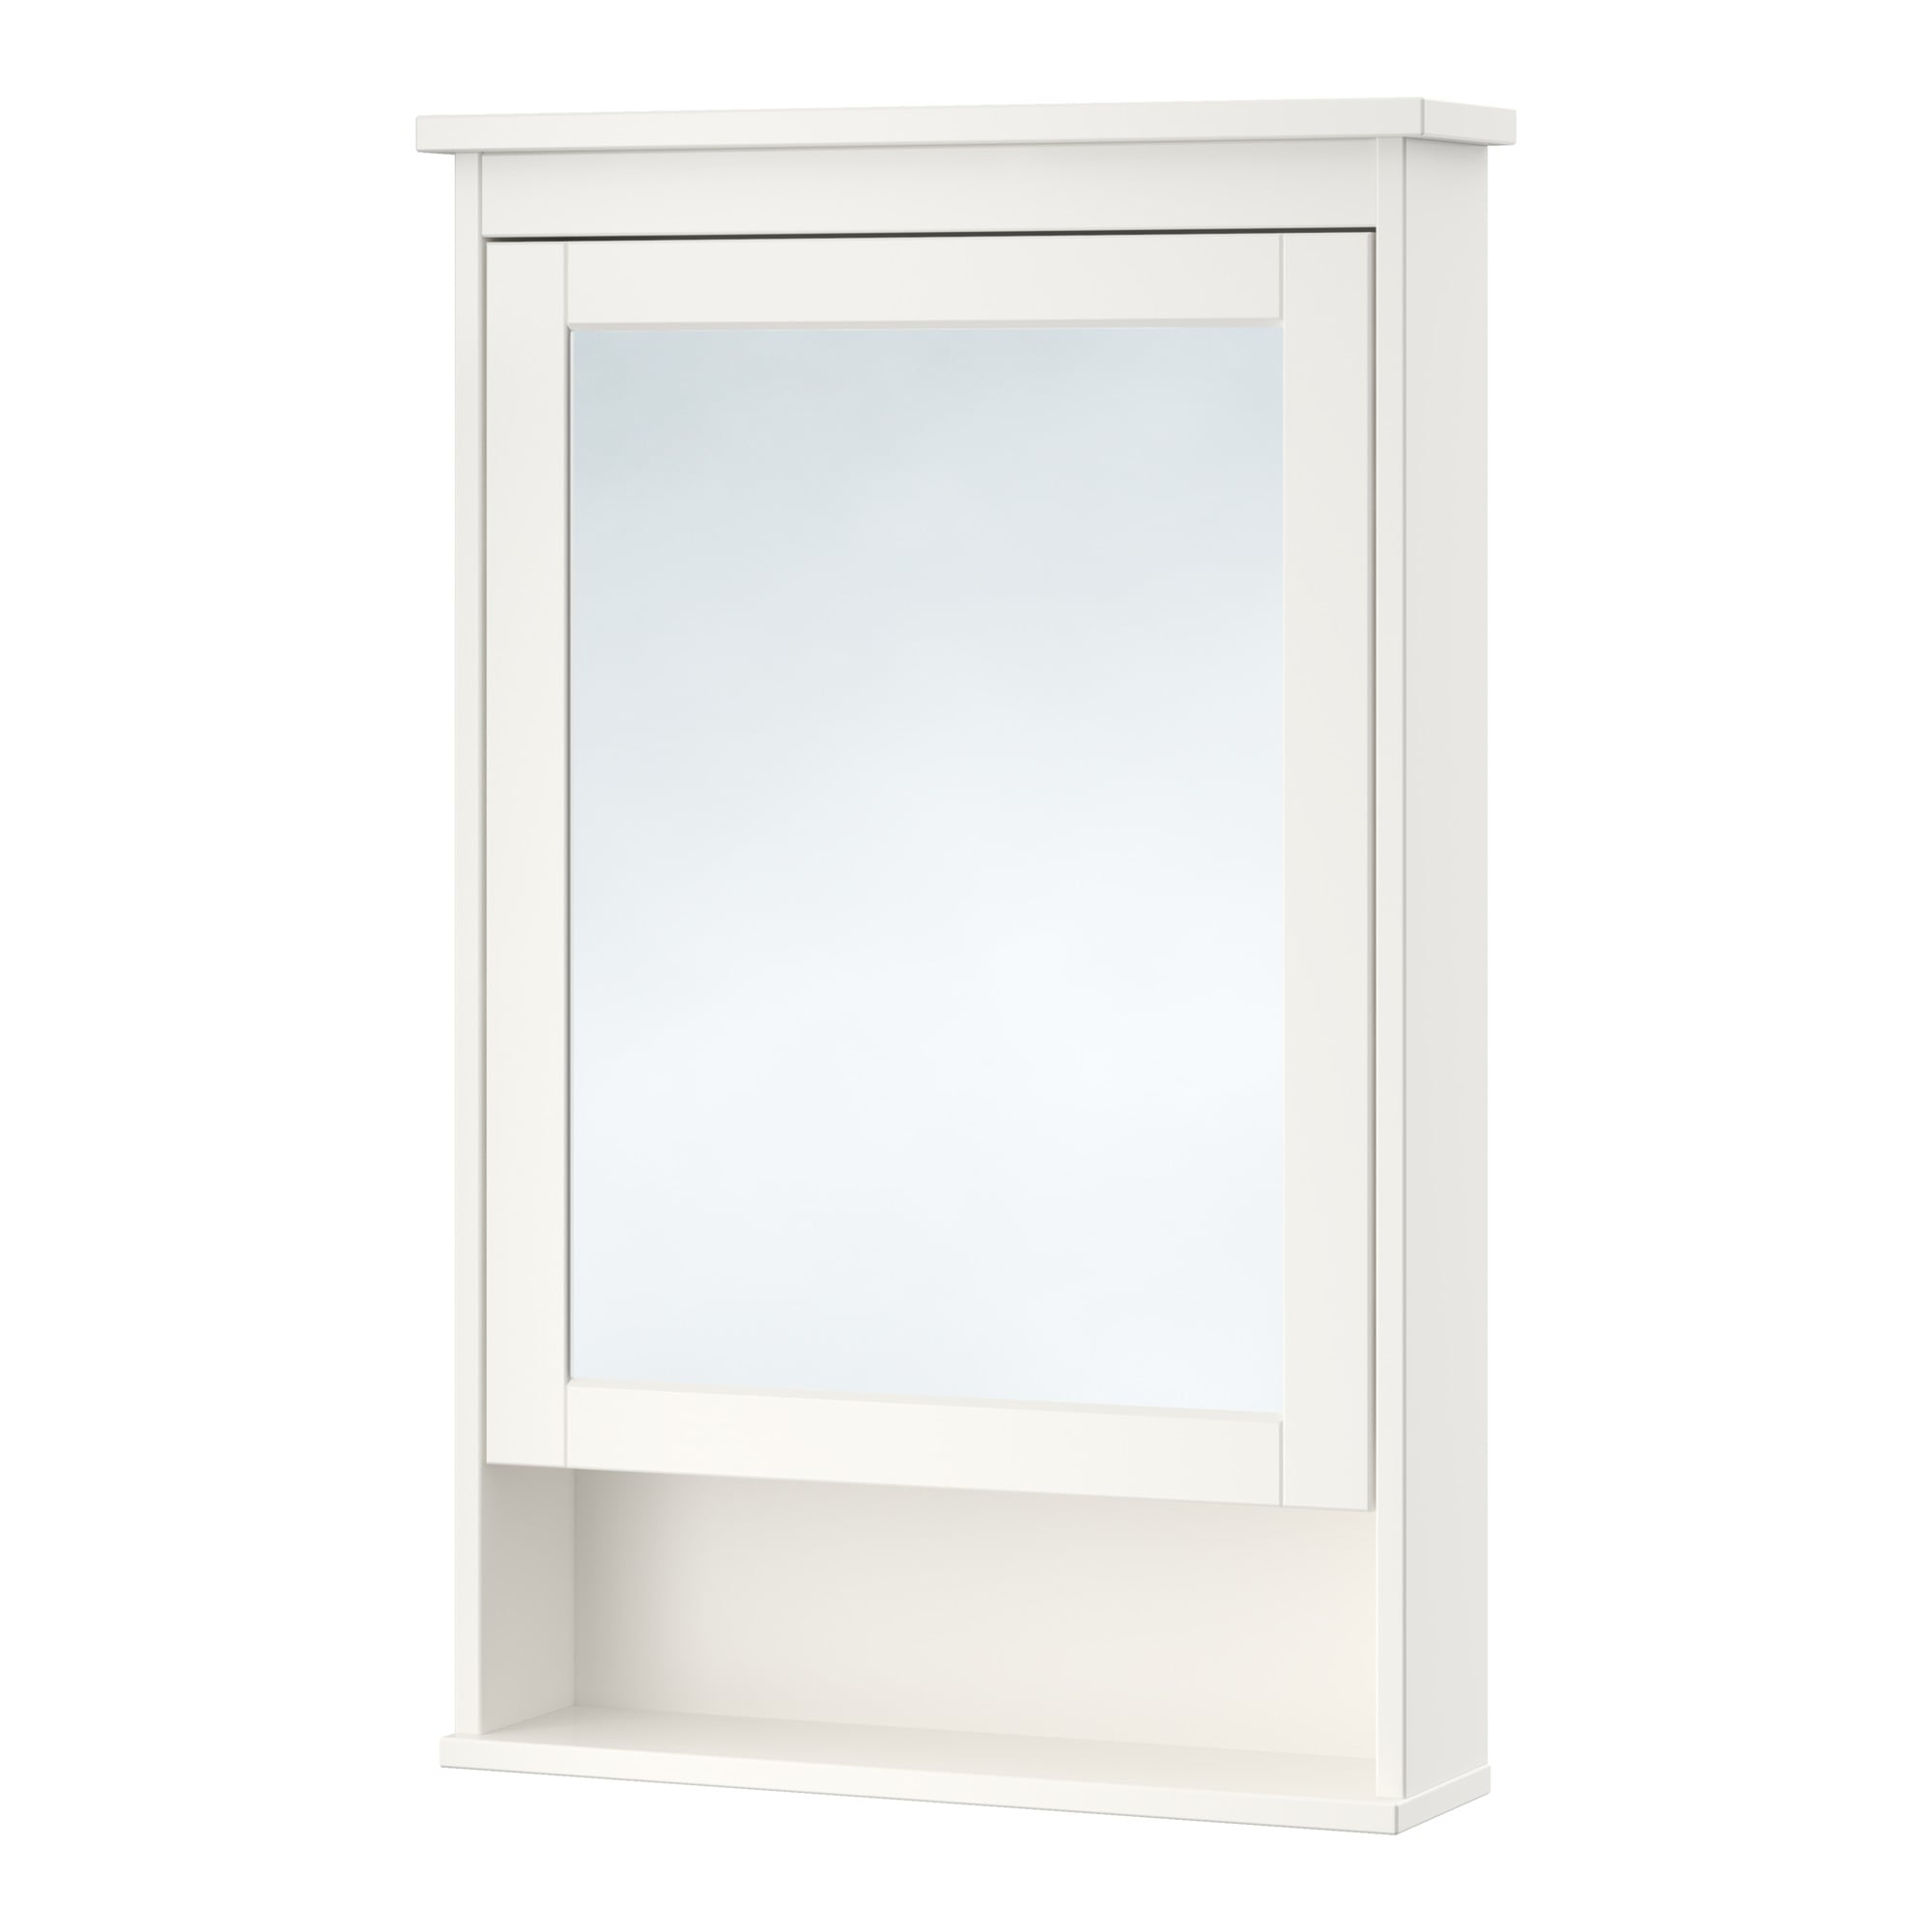 Bathroom mirror cabinets ikea - Hemnes Mirror Cabinet With 1 Door White Width 24 3 4 Depth